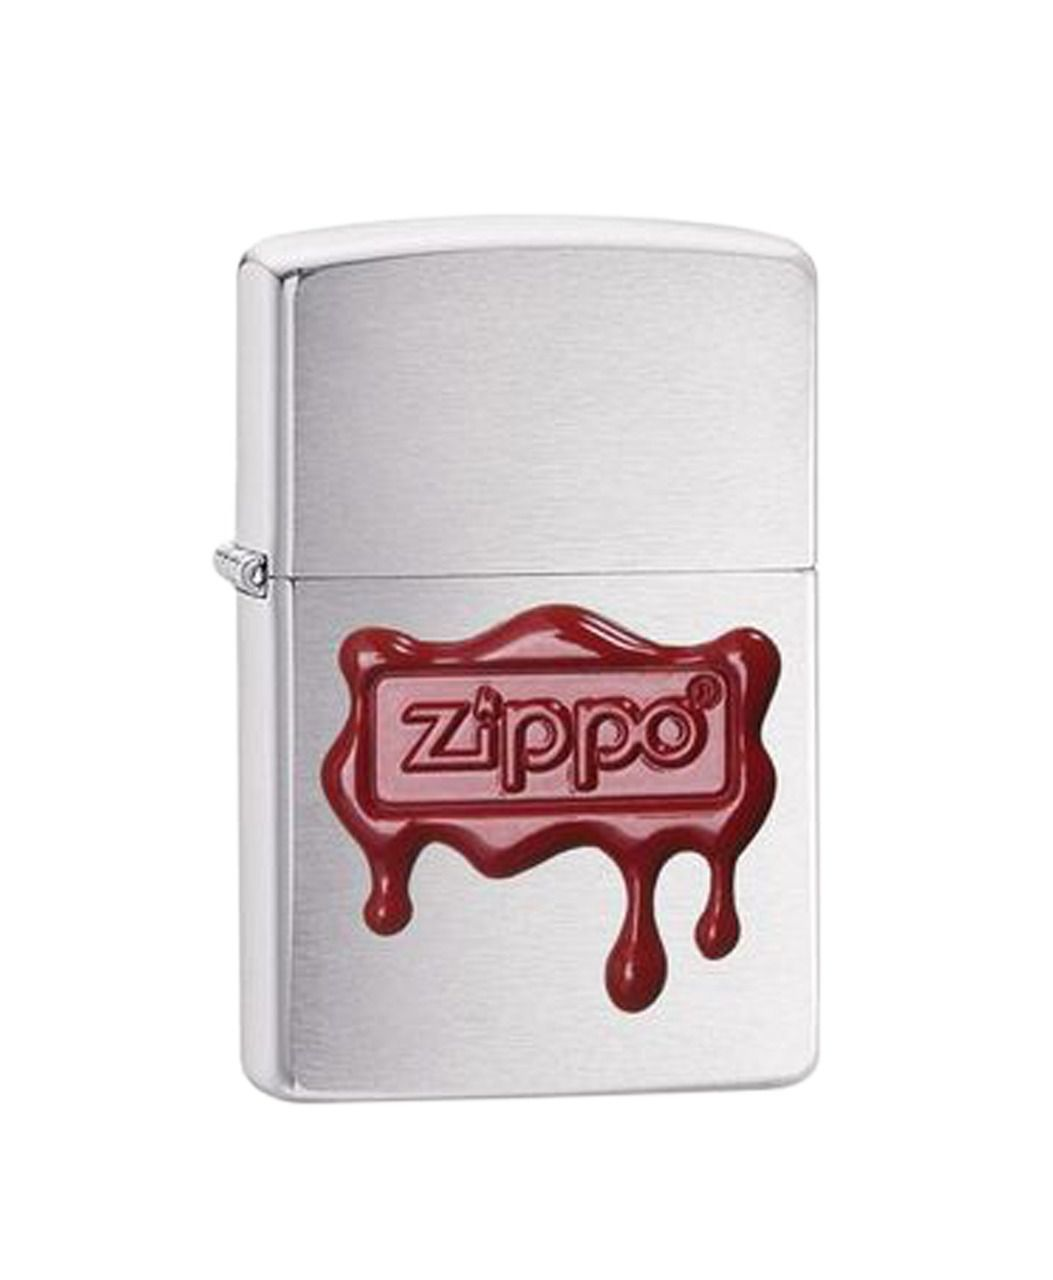 Isqueiro Zippo Red Wax Seal Brushed